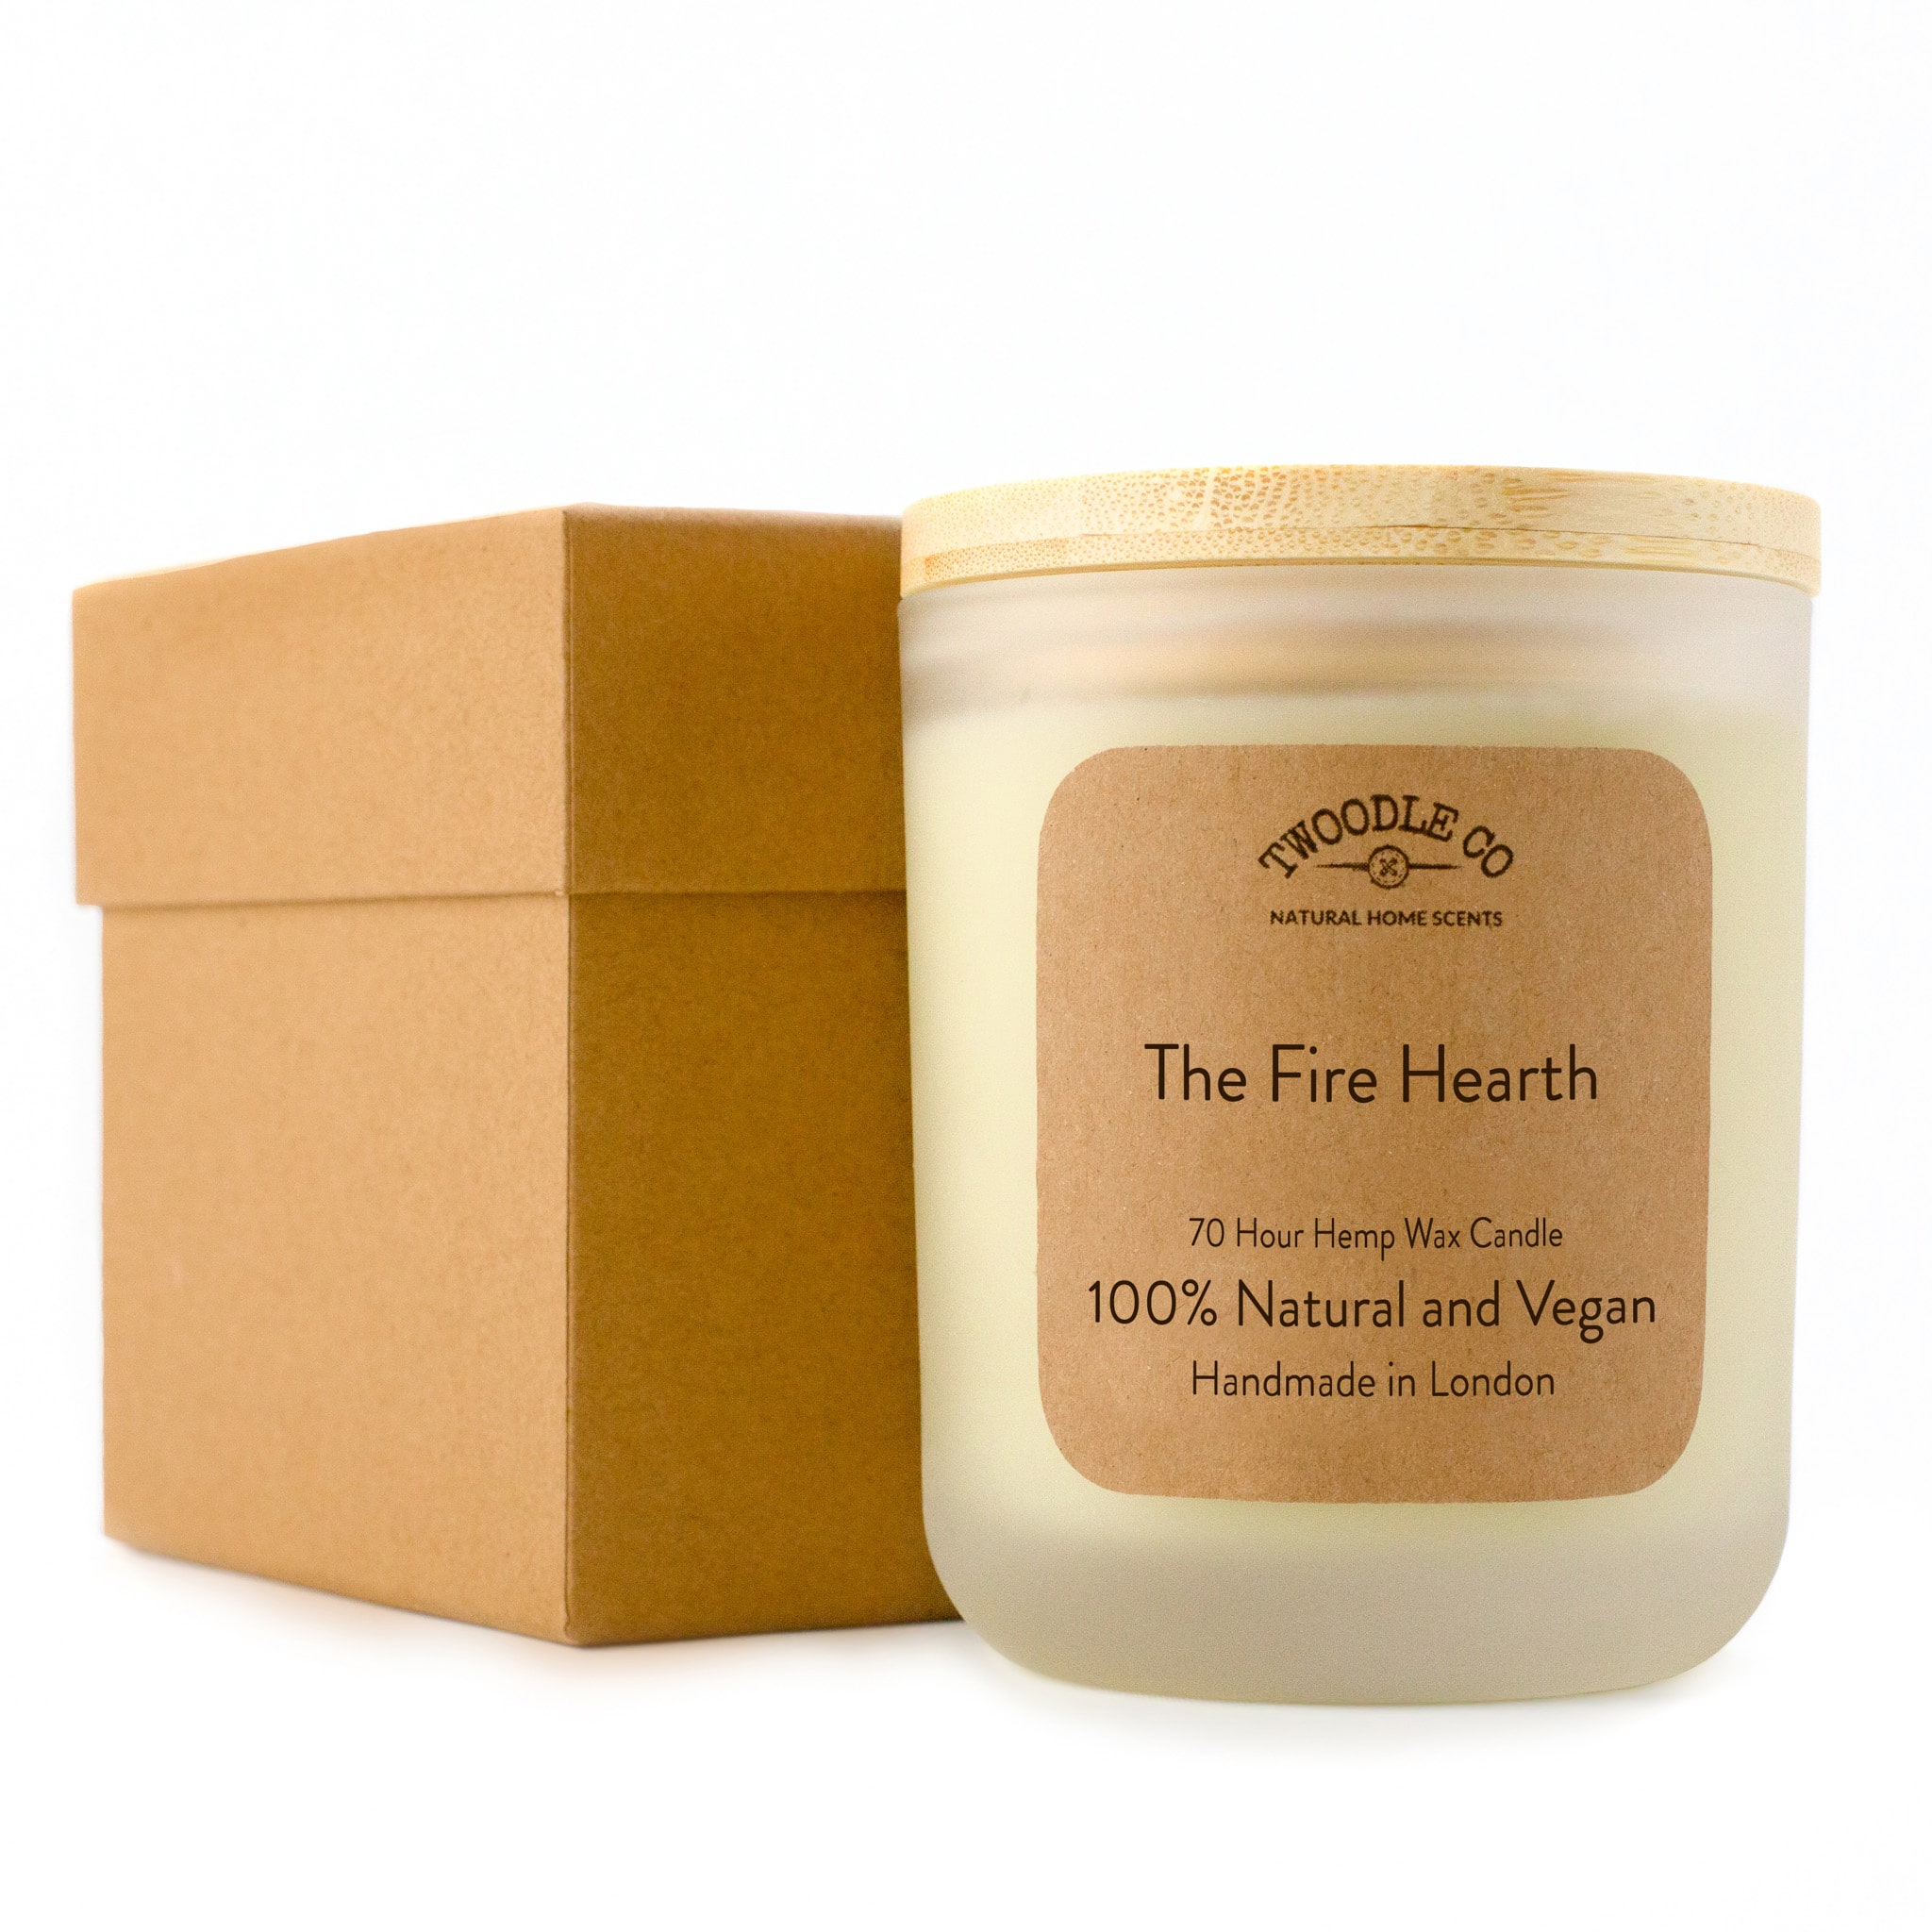 The Fire Hearth Large Scented Candle 70 Hour